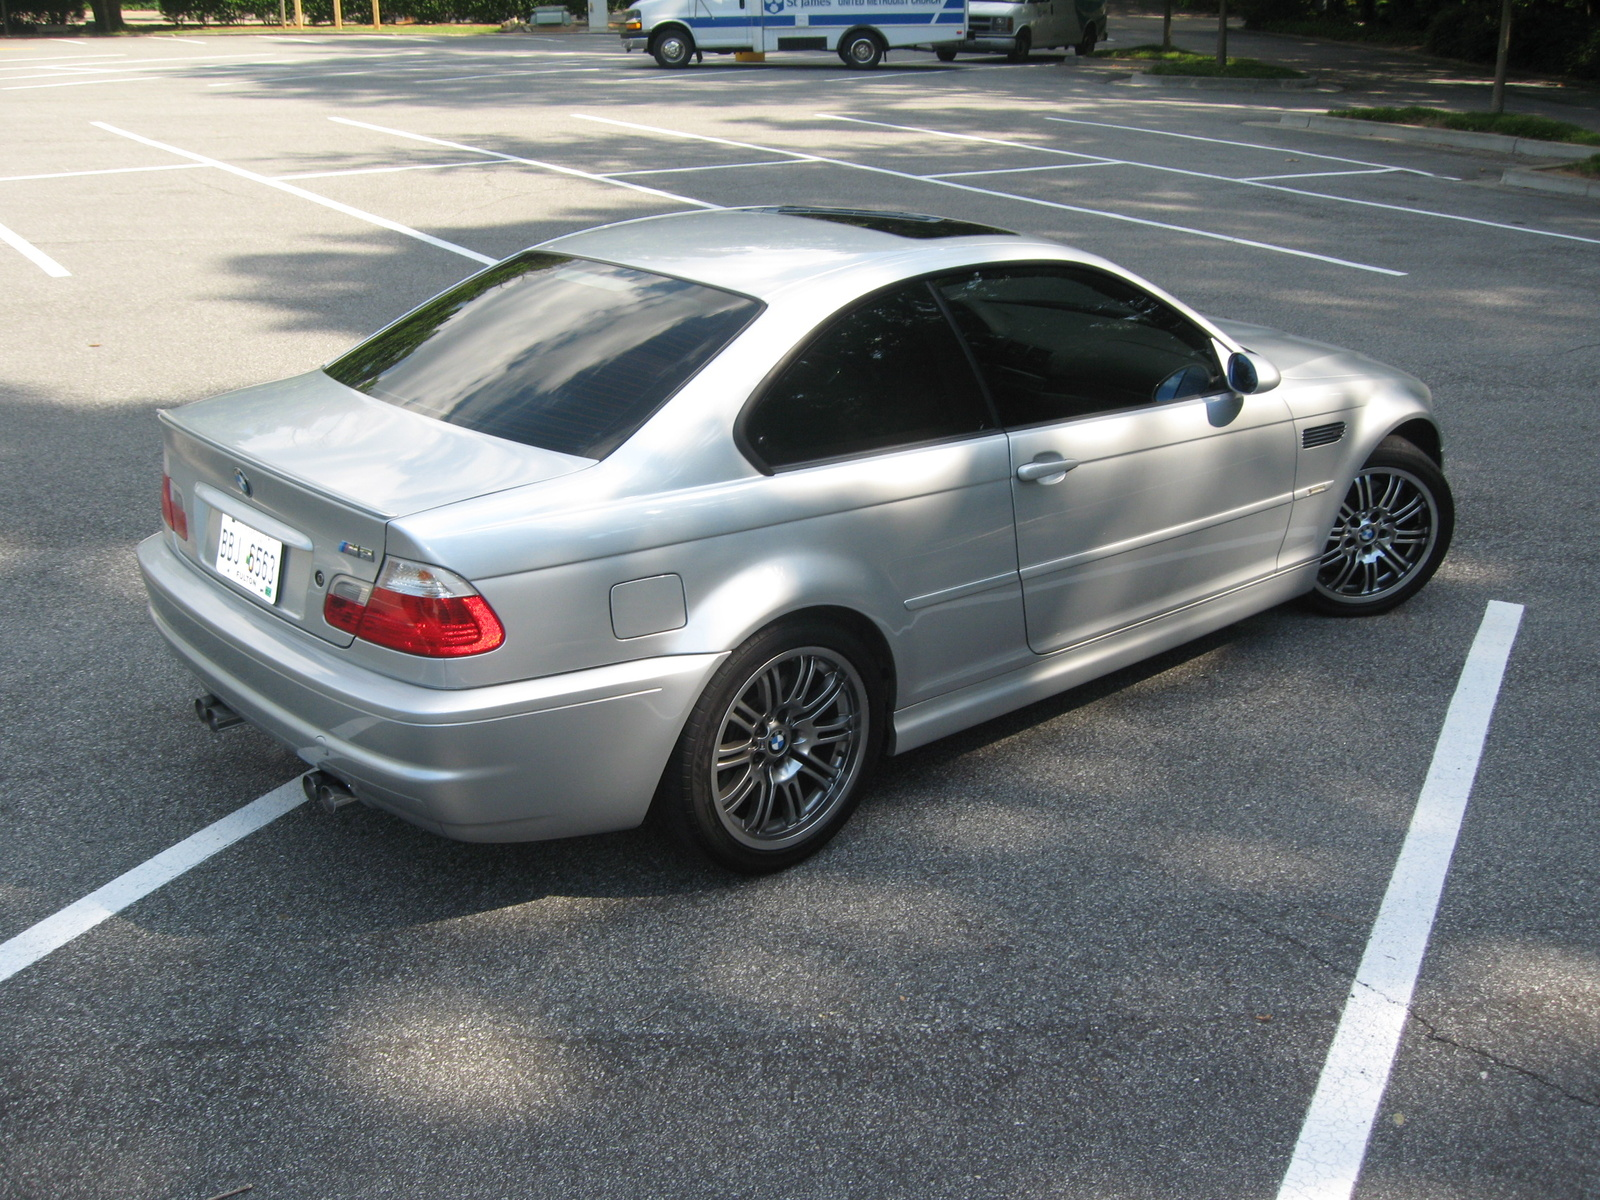 2001 BMW M3 - Pictures - 2001 BMW M3 Coupe picture - CarGurus